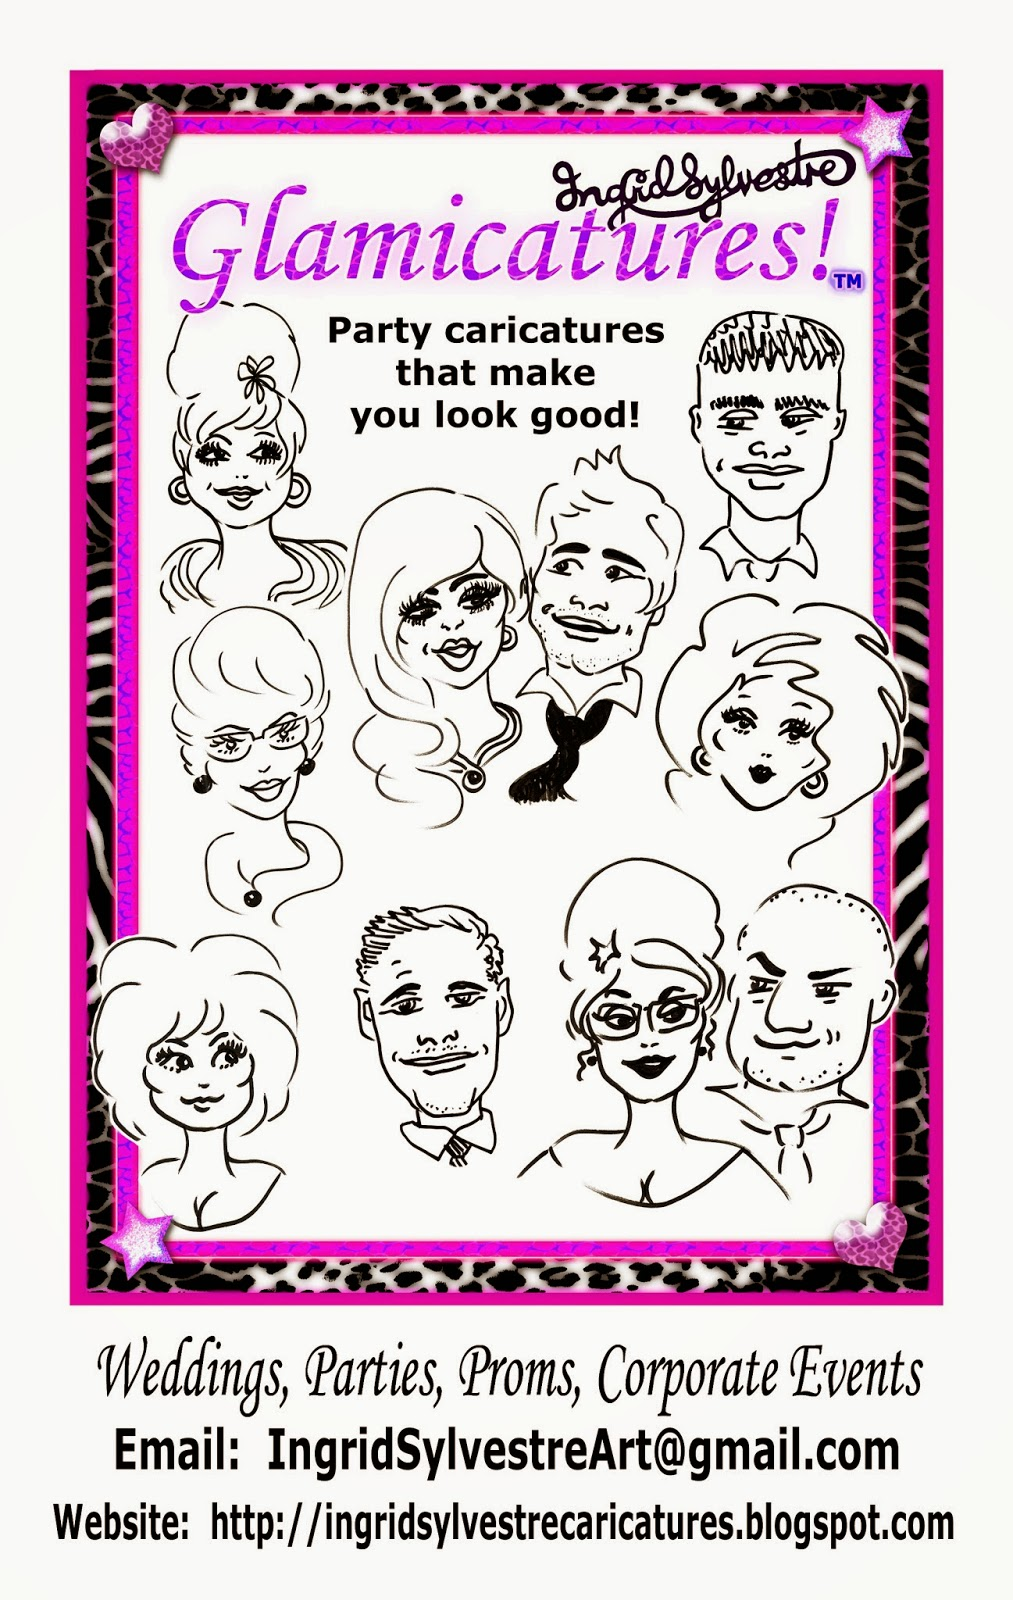 Wedding Entertainment ideas Wedding Caricatures Wedding planning Wedding ideas Weddings North East Party Caricatures Party Entertainment ideas Prom Entertainment Proms ideas corporate Entertainment ideas Events Entertainment Caricatures at Events North East UK Newcastle upon Tyne Durham Sunderland Teesside Northumberland Yorkshire UK caricaturist Ingrid Sylvestre